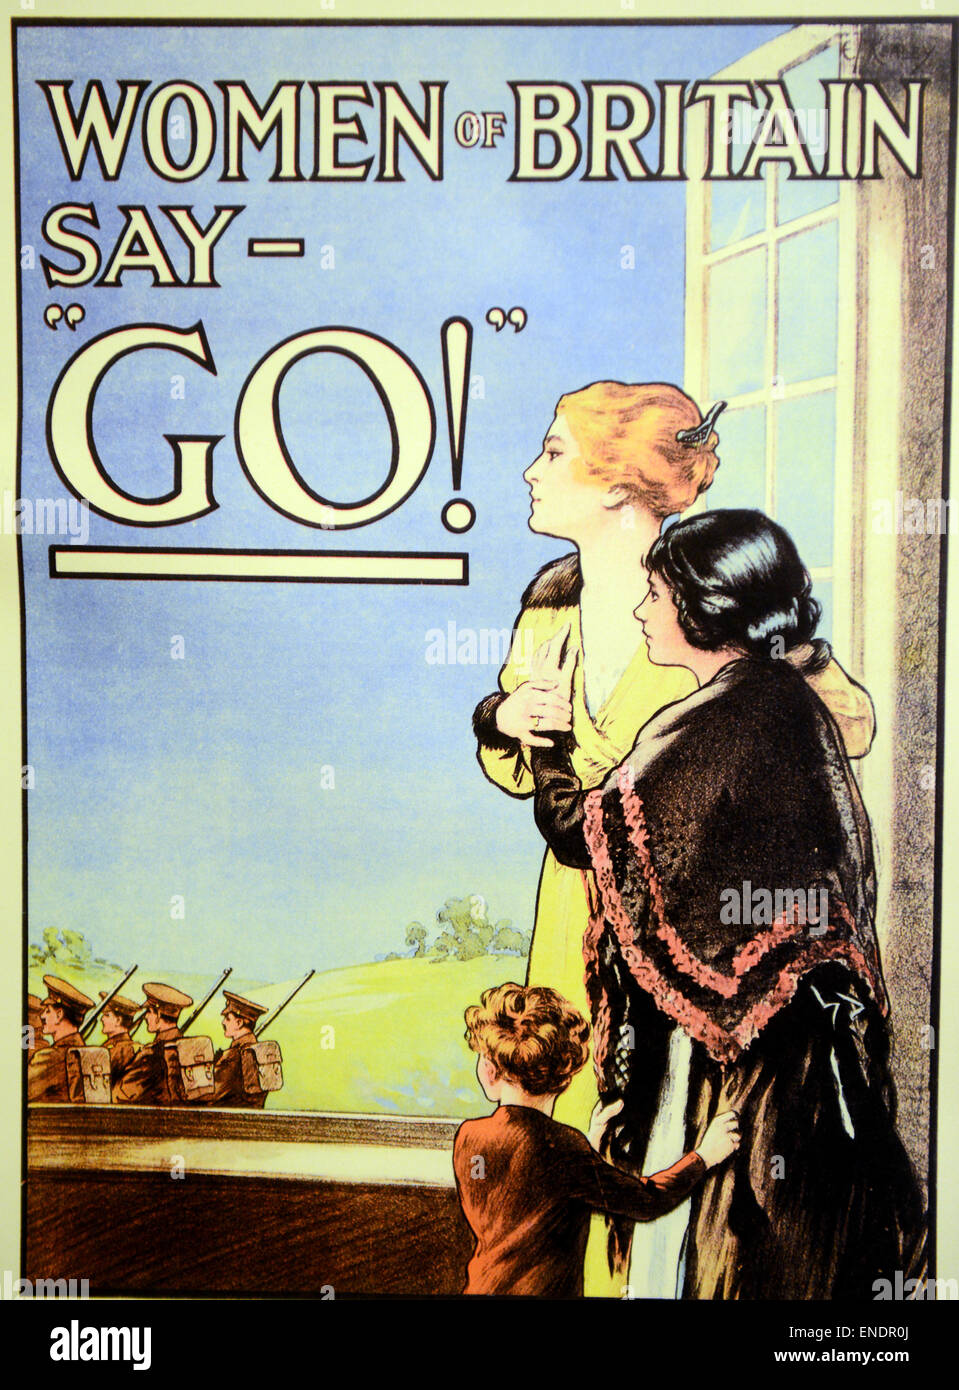 an overview of the wartime propaganda of world war one As saturday 28 june marks 100 years since the start of world war one, and 4 august marks the anniversary of britian officially going to war, we take a look back at some of the most famous propaganda ads from the time.